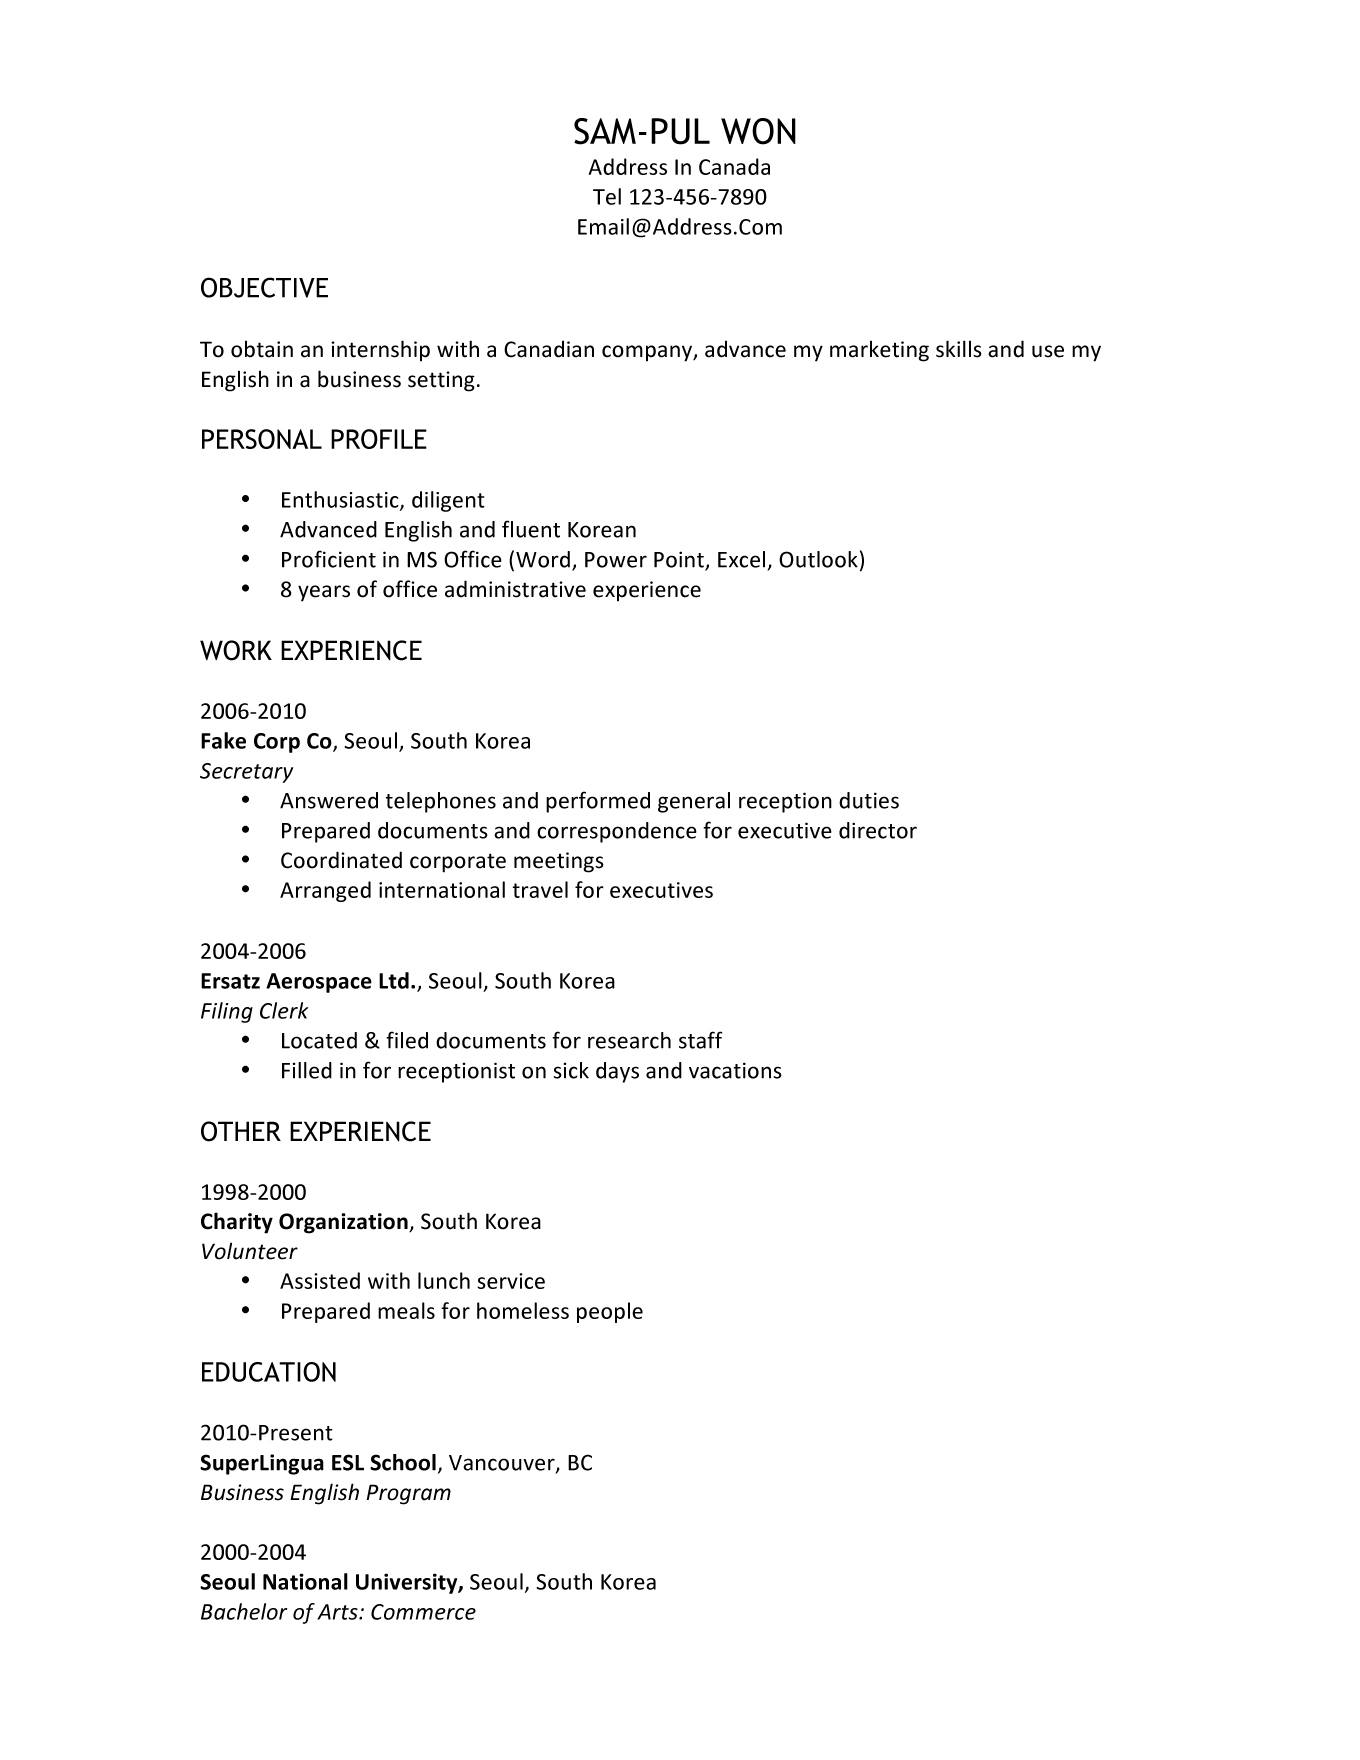 resume referrals upon request professional resume it sample resume maker create professional examples of good resumes